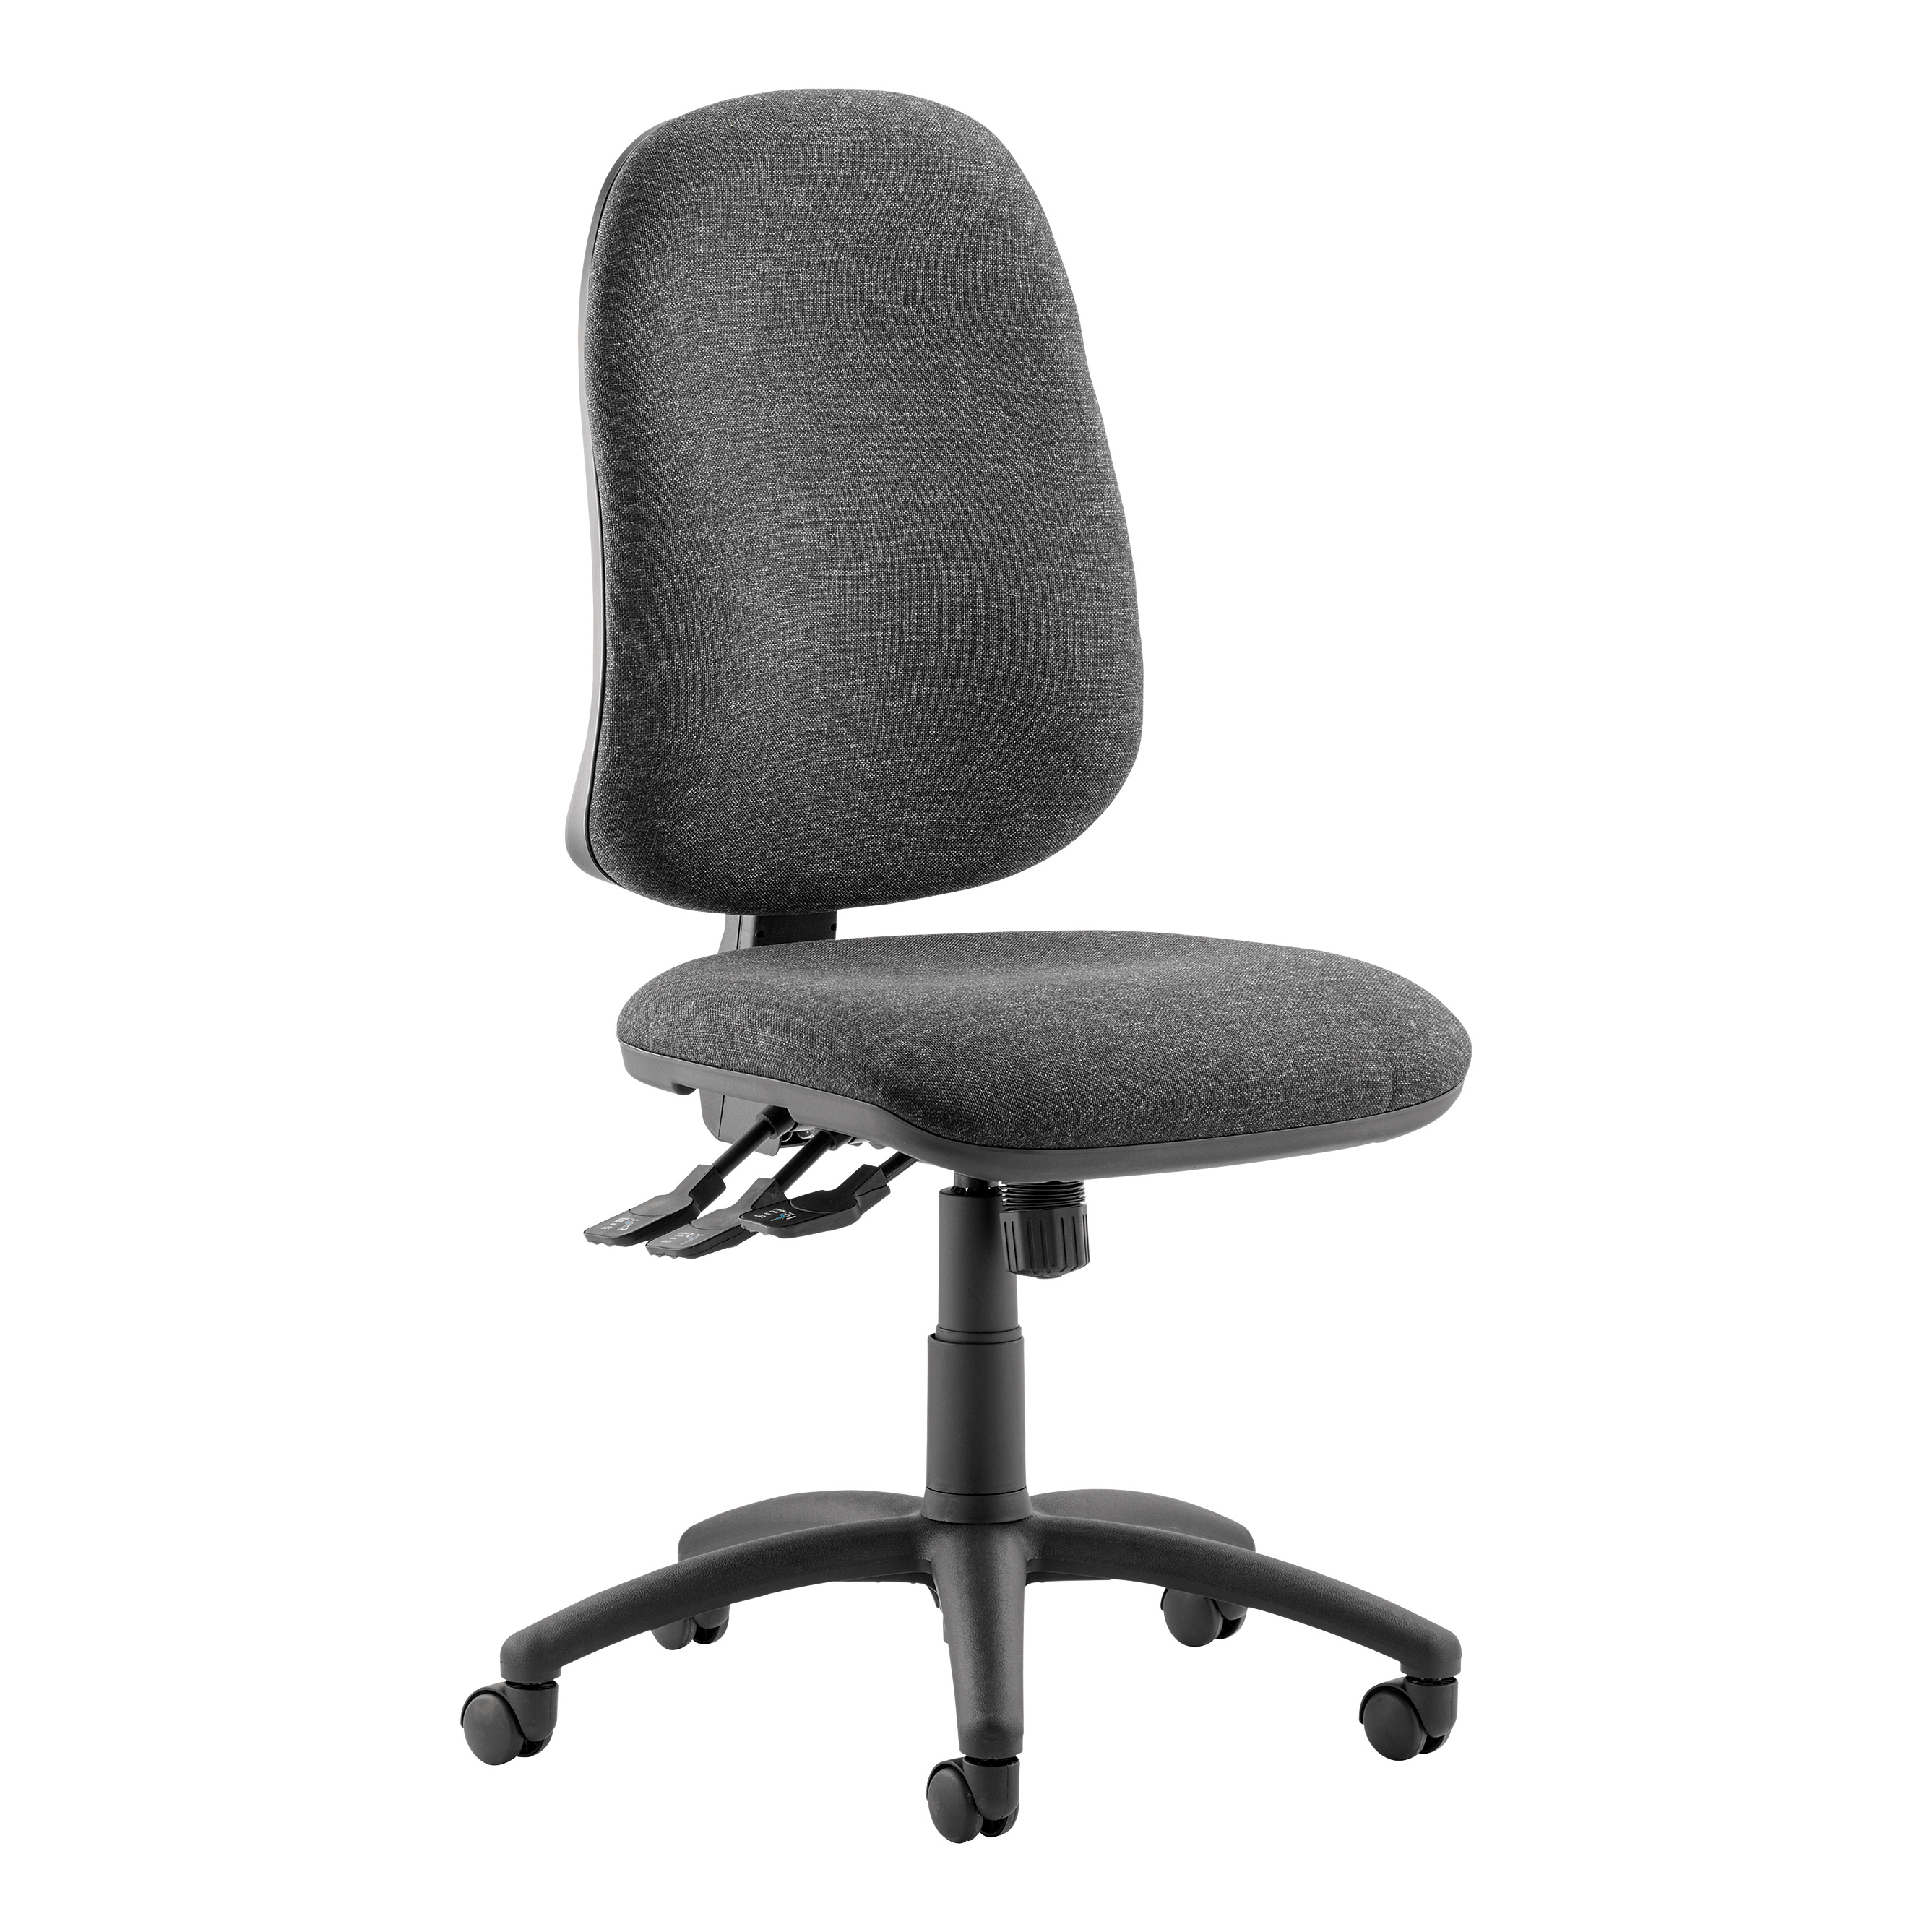 Trexus 3 Lever Maxi Operators Chair Charcoal 530x480x470-580mm Ref OP000040